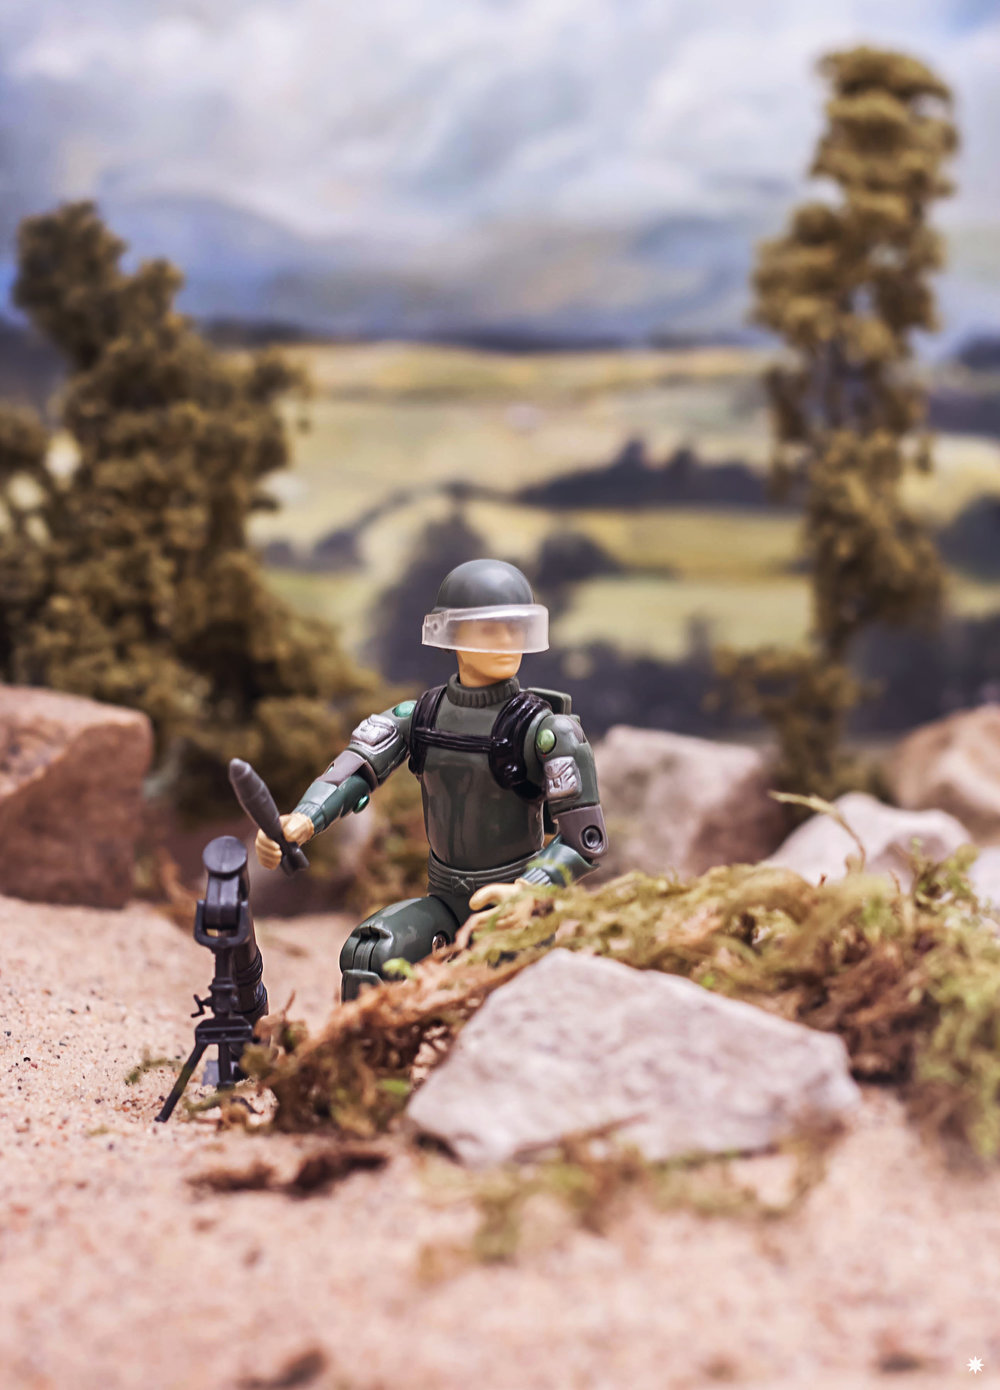 short-fuze-gijoe-action-figure-toy-photography-paul-panfalone-diorama.jpg